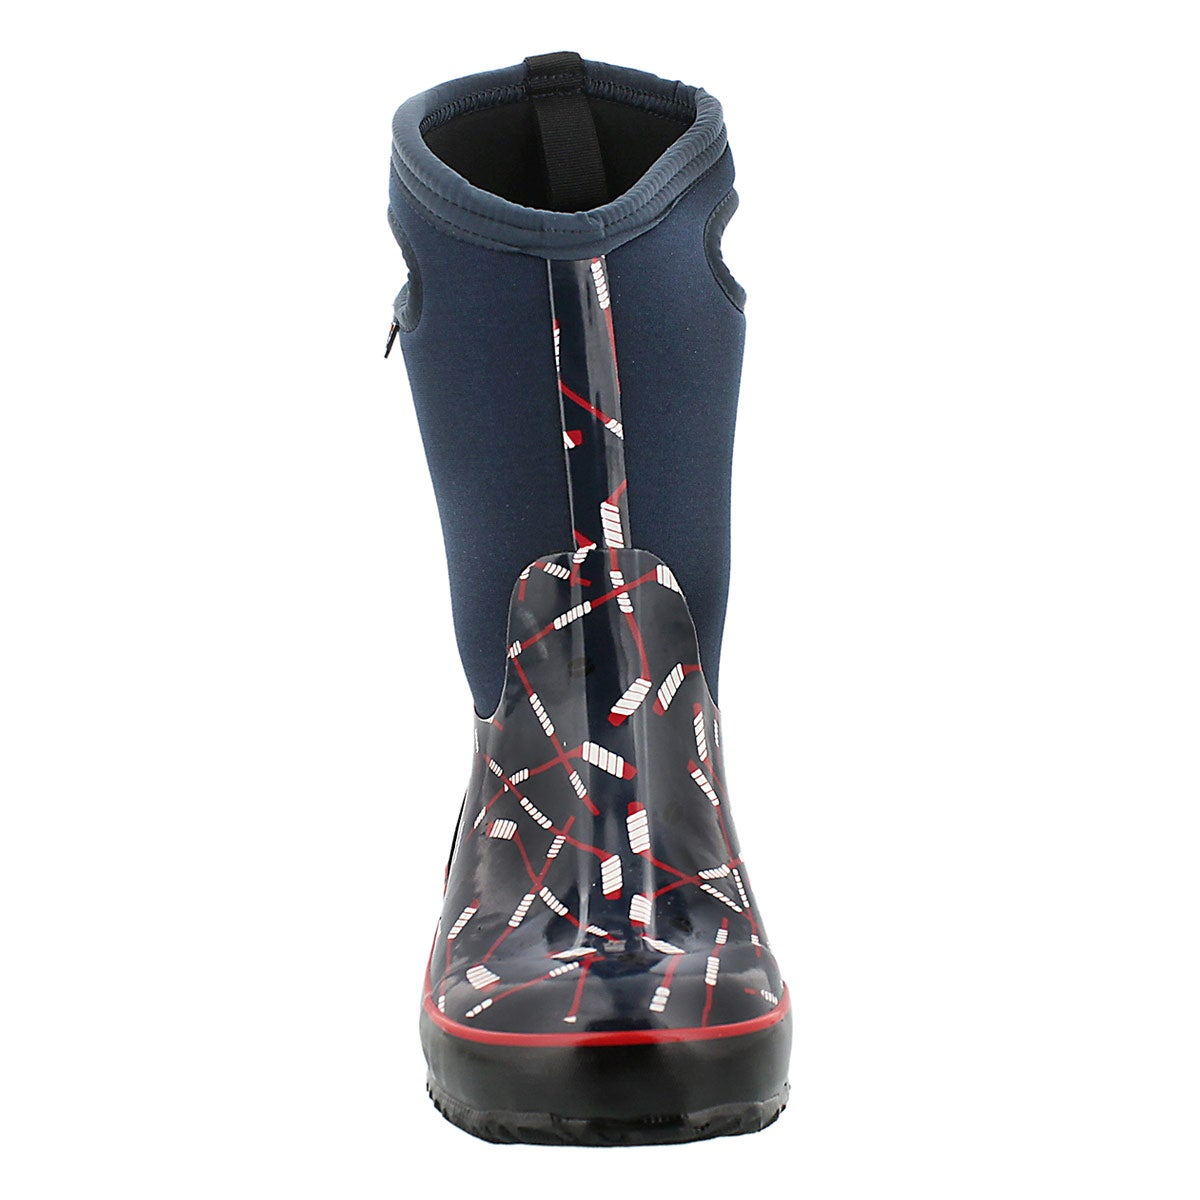 Bys Classic Hockey  blue boot